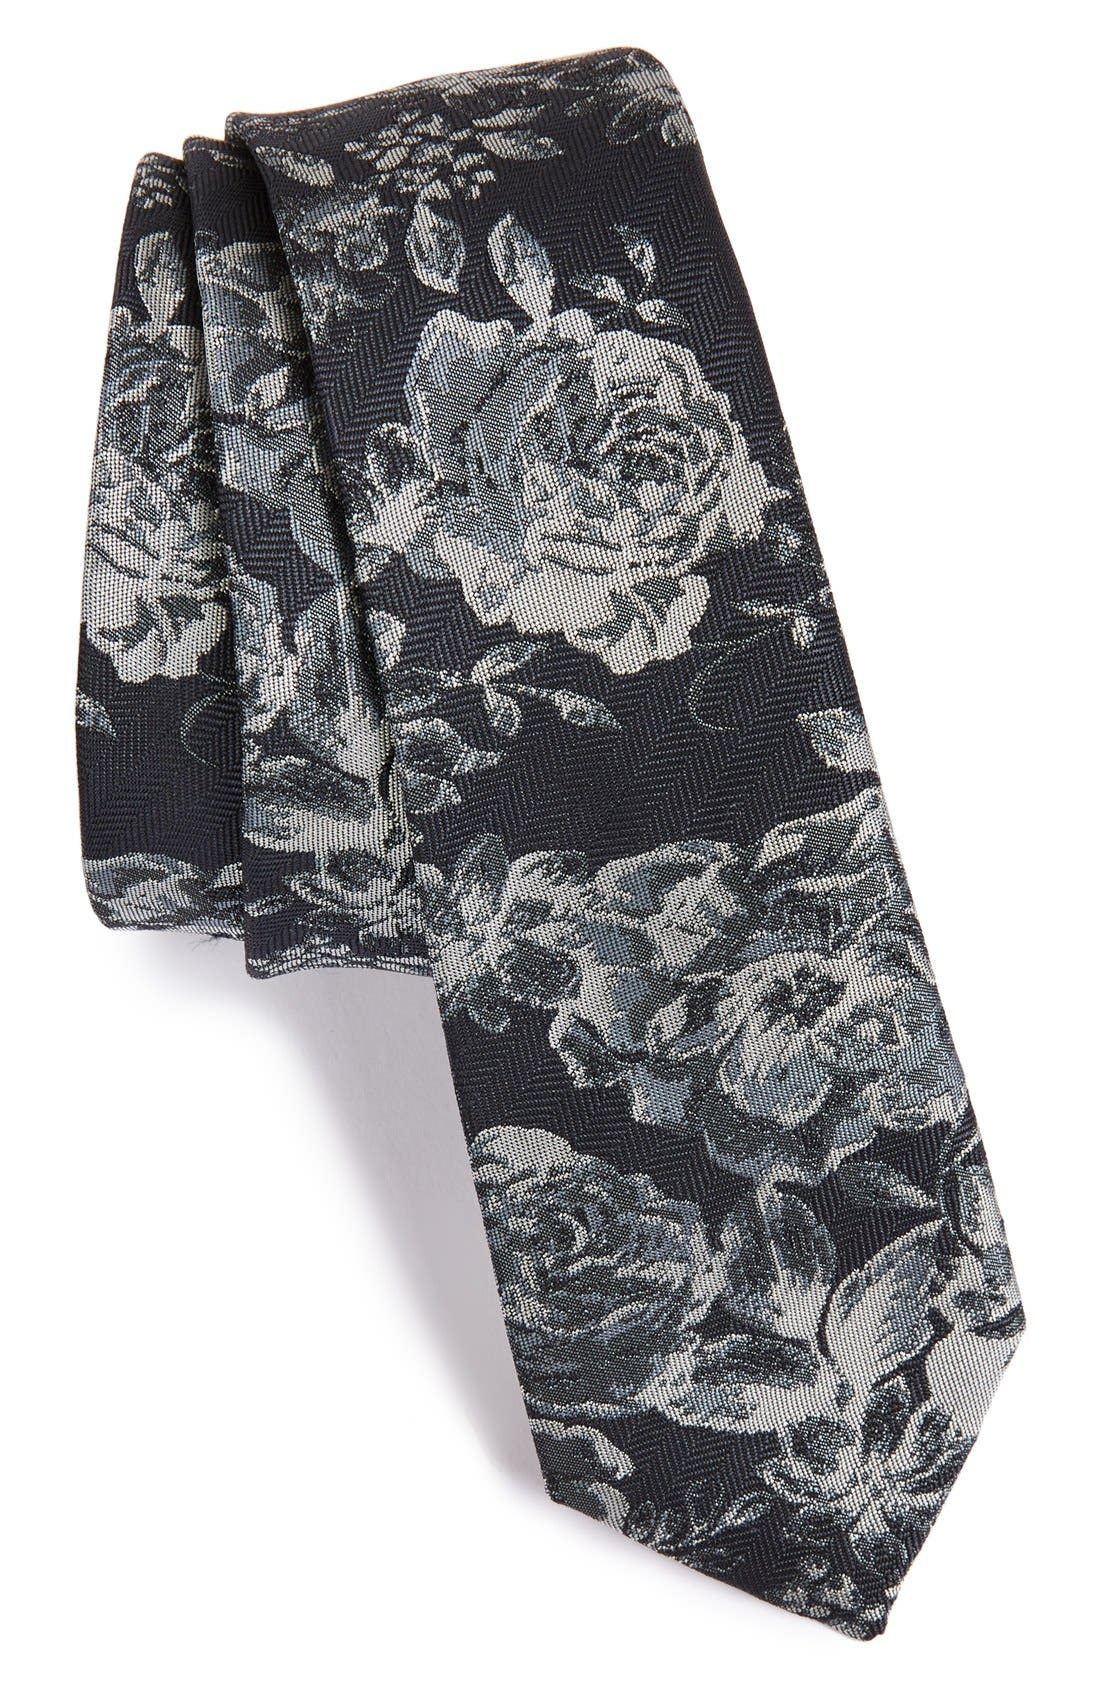 Alternate Image 1 Selected - Topman Slim Floral Woven Tie